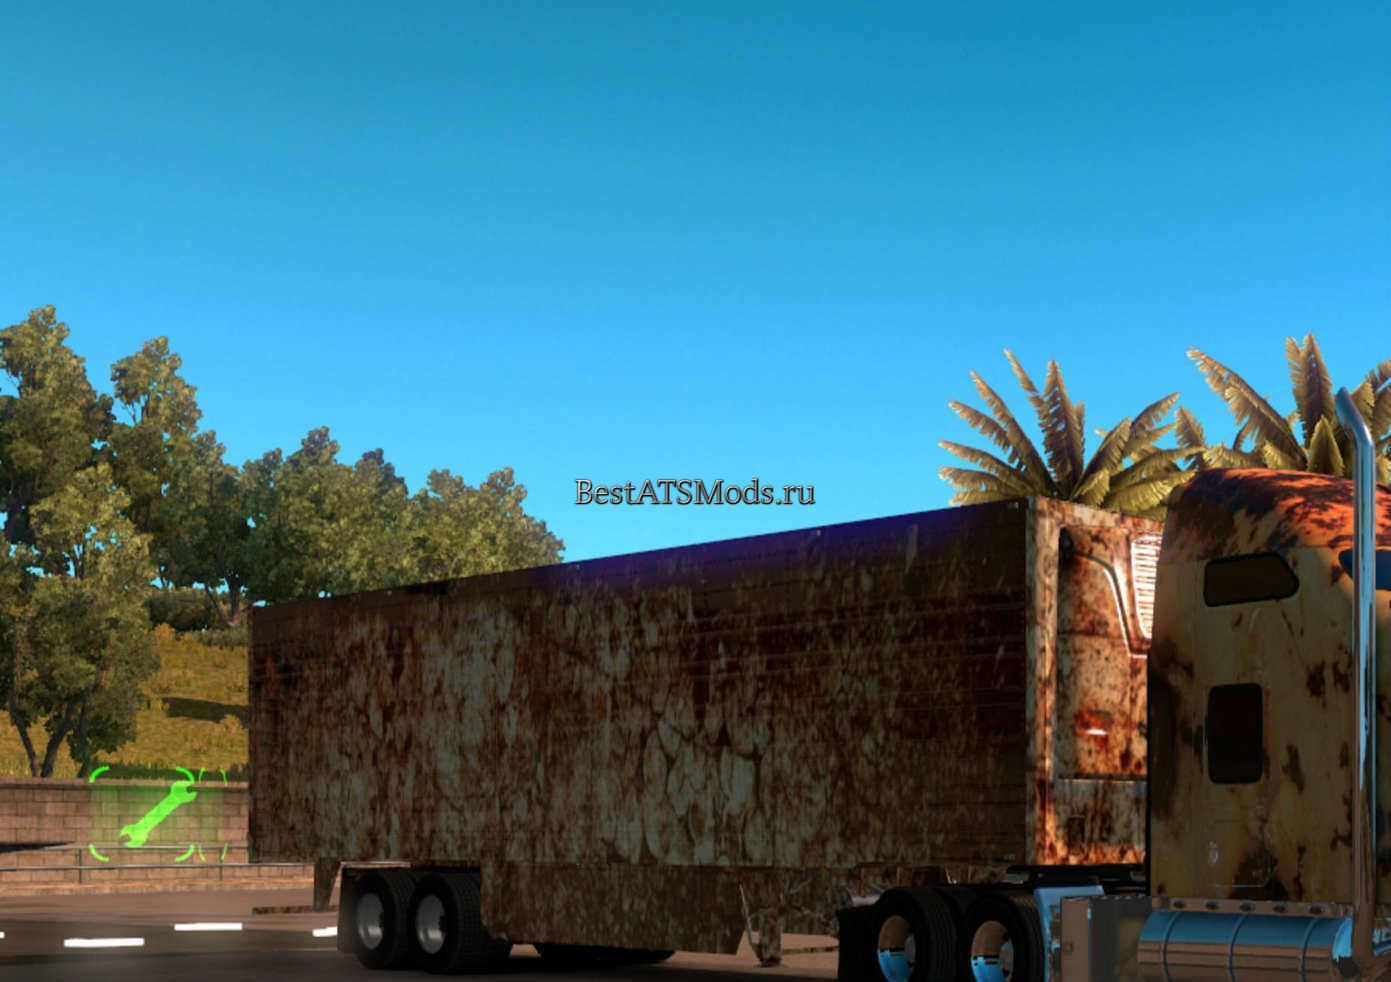 rsz_Мод_прицеп_rusty_trailer_for_american_truck_simulator